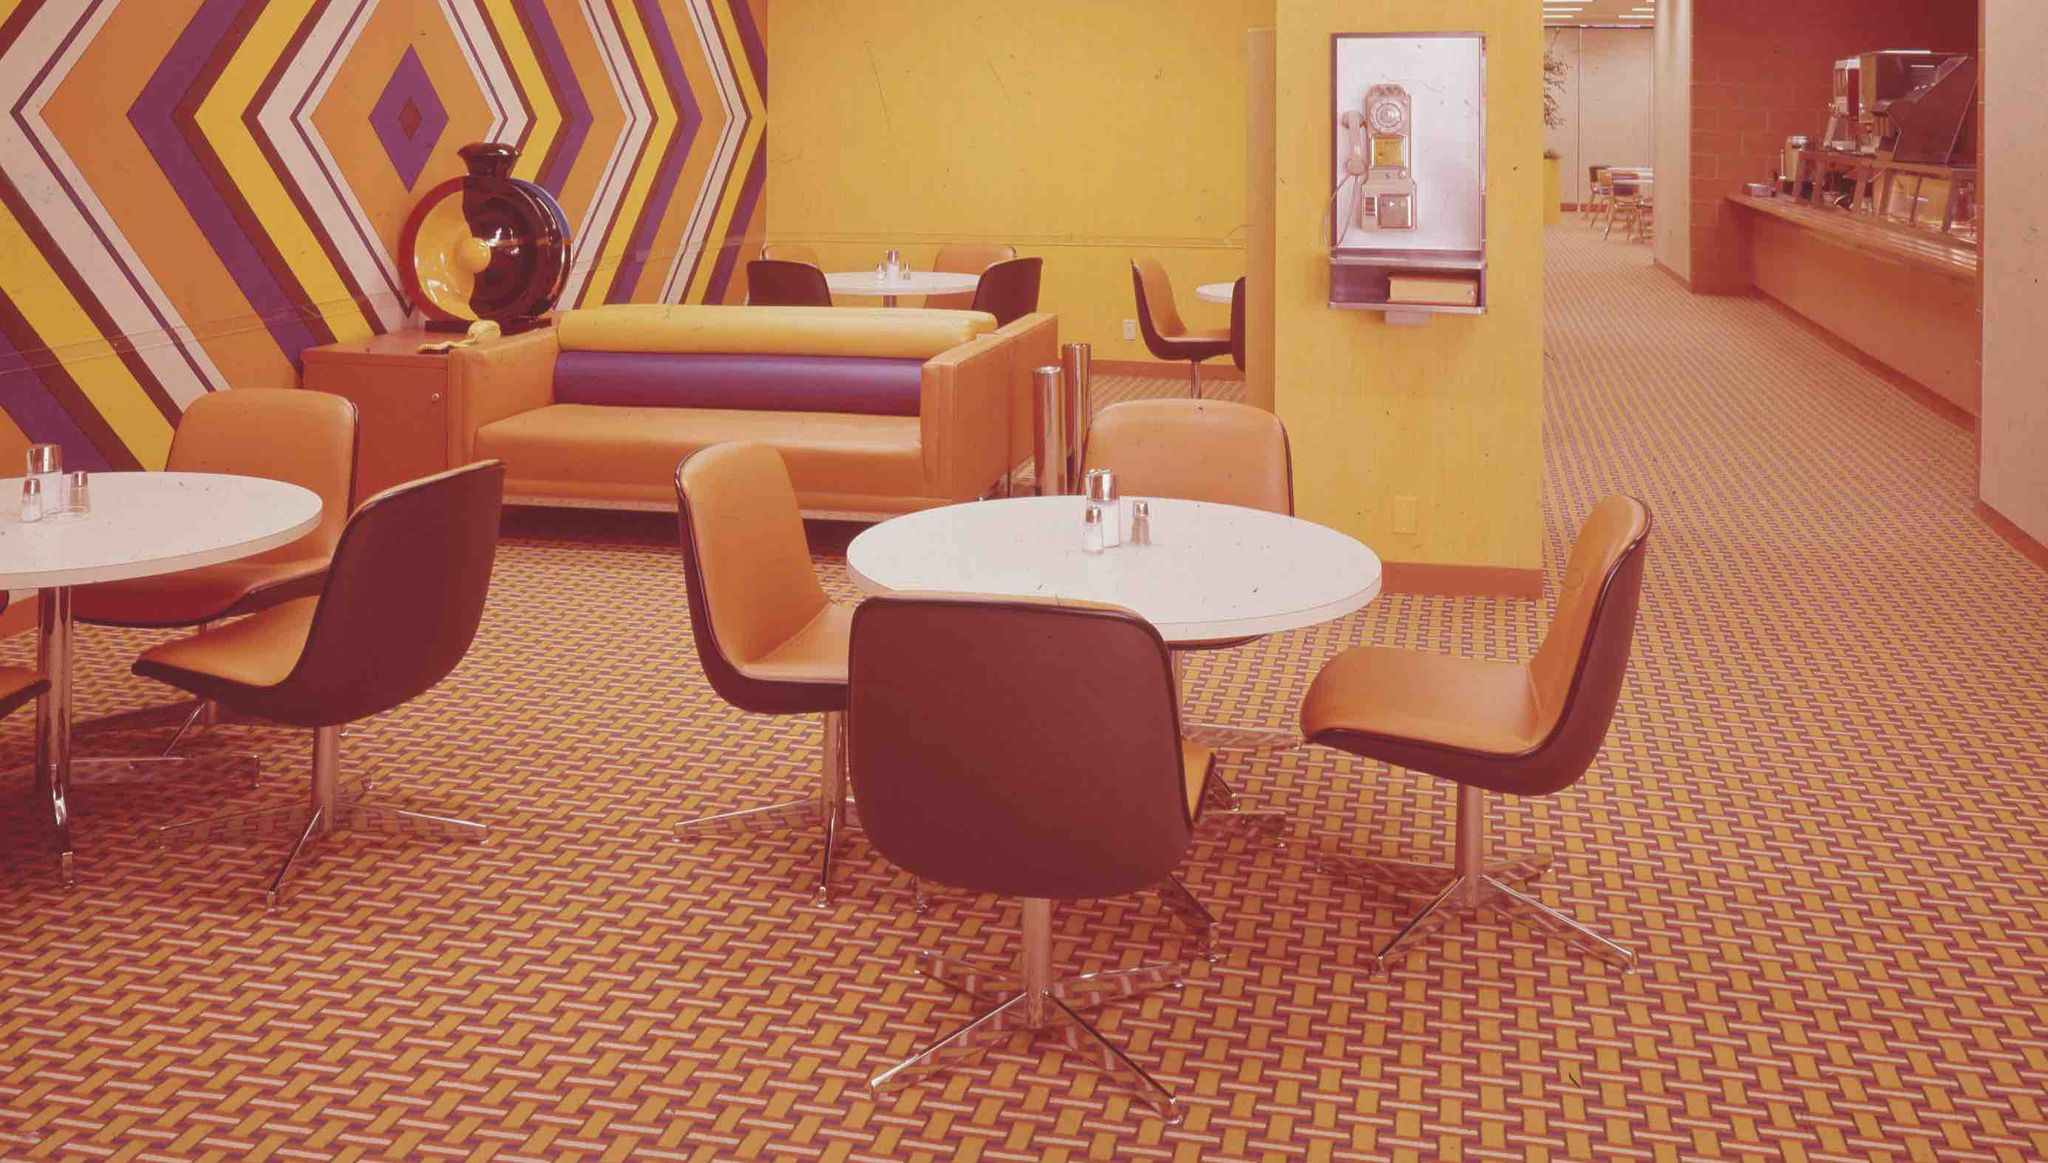 Fighting Racism from Office Interiors